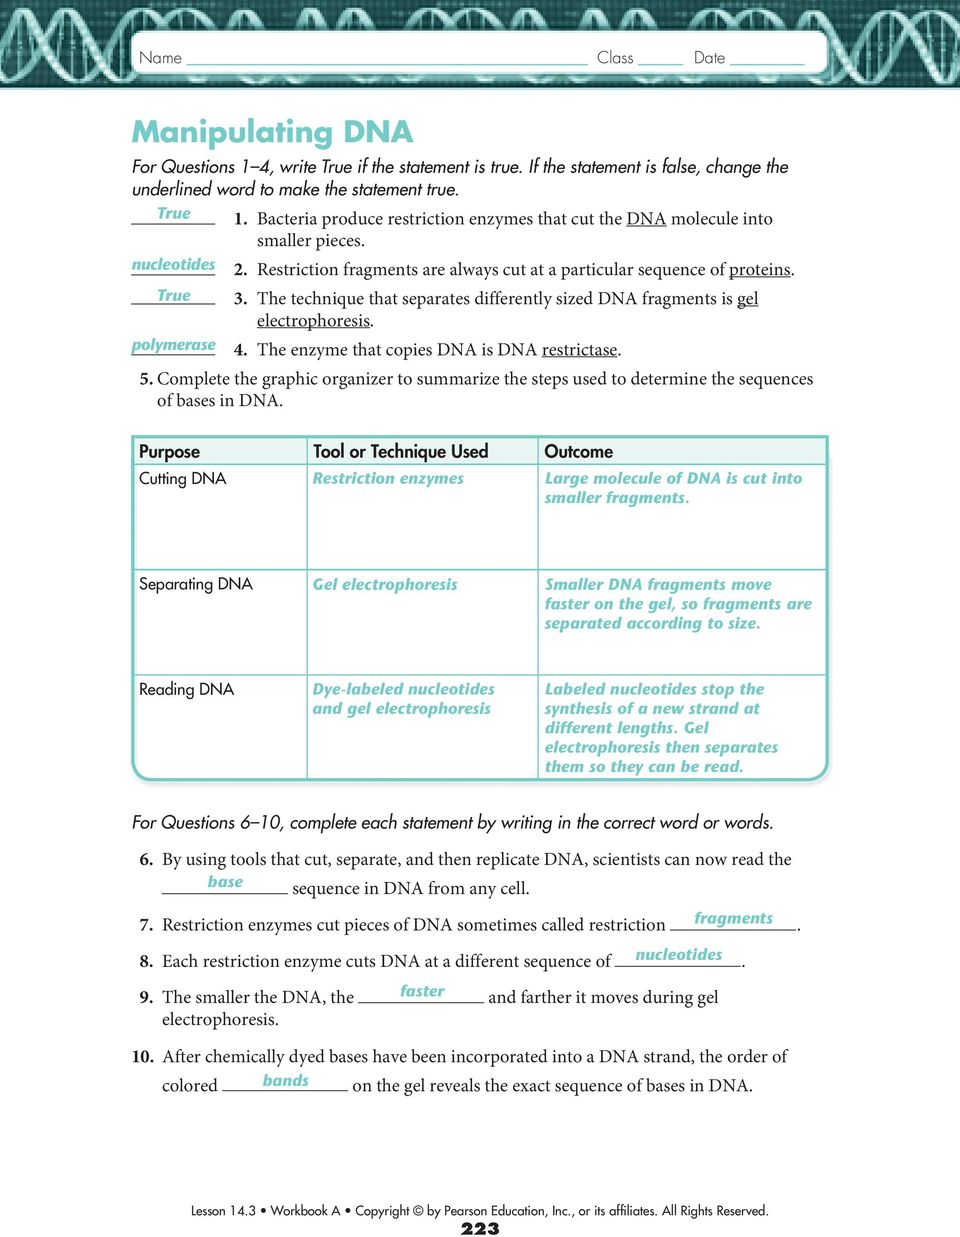 Dna Structure Worksheet Inspirational Beautiful What is the le as well Dna Structure Worksheet Answers   holidayfu together with Answers to Chapter 12 Review Questions p  315 together with Build a DNA Ladder Worksheet   Unit Content Ideas   Teaching science further Dna Replication Worksheet Awesome Dna Replication Worksheet Answers also Discovery of the structure of DNA  article    Khan Academy as well SAY IT WITH DNA  PROTEIN SYNTHESIS WORKSHEET  Practice Pays furthermore Biology Worksheet Answers   Siteraven furthermore Dna Worksheet Answers    Dna Rna And Protein Synthesis Answers also Chapter 12 Dna And Rna Worksheet Answers The best worksheets image furthermore 13 Best Images of Chromosomes And Genes Worksheet DNA and as well Dna Replication Worksheet Answers   Siteraven in addition 12 1 Dna Worksheet Answers   Oaklandeffect together with 14 3 Studying the Genome   PDF additionally Growth In A Bacterial Potion Worksheet Answers Math 2320 further Dna the Molecule Of Heredity Worksheet Answers   Homedressage. on unit 12 dna worksheet answers